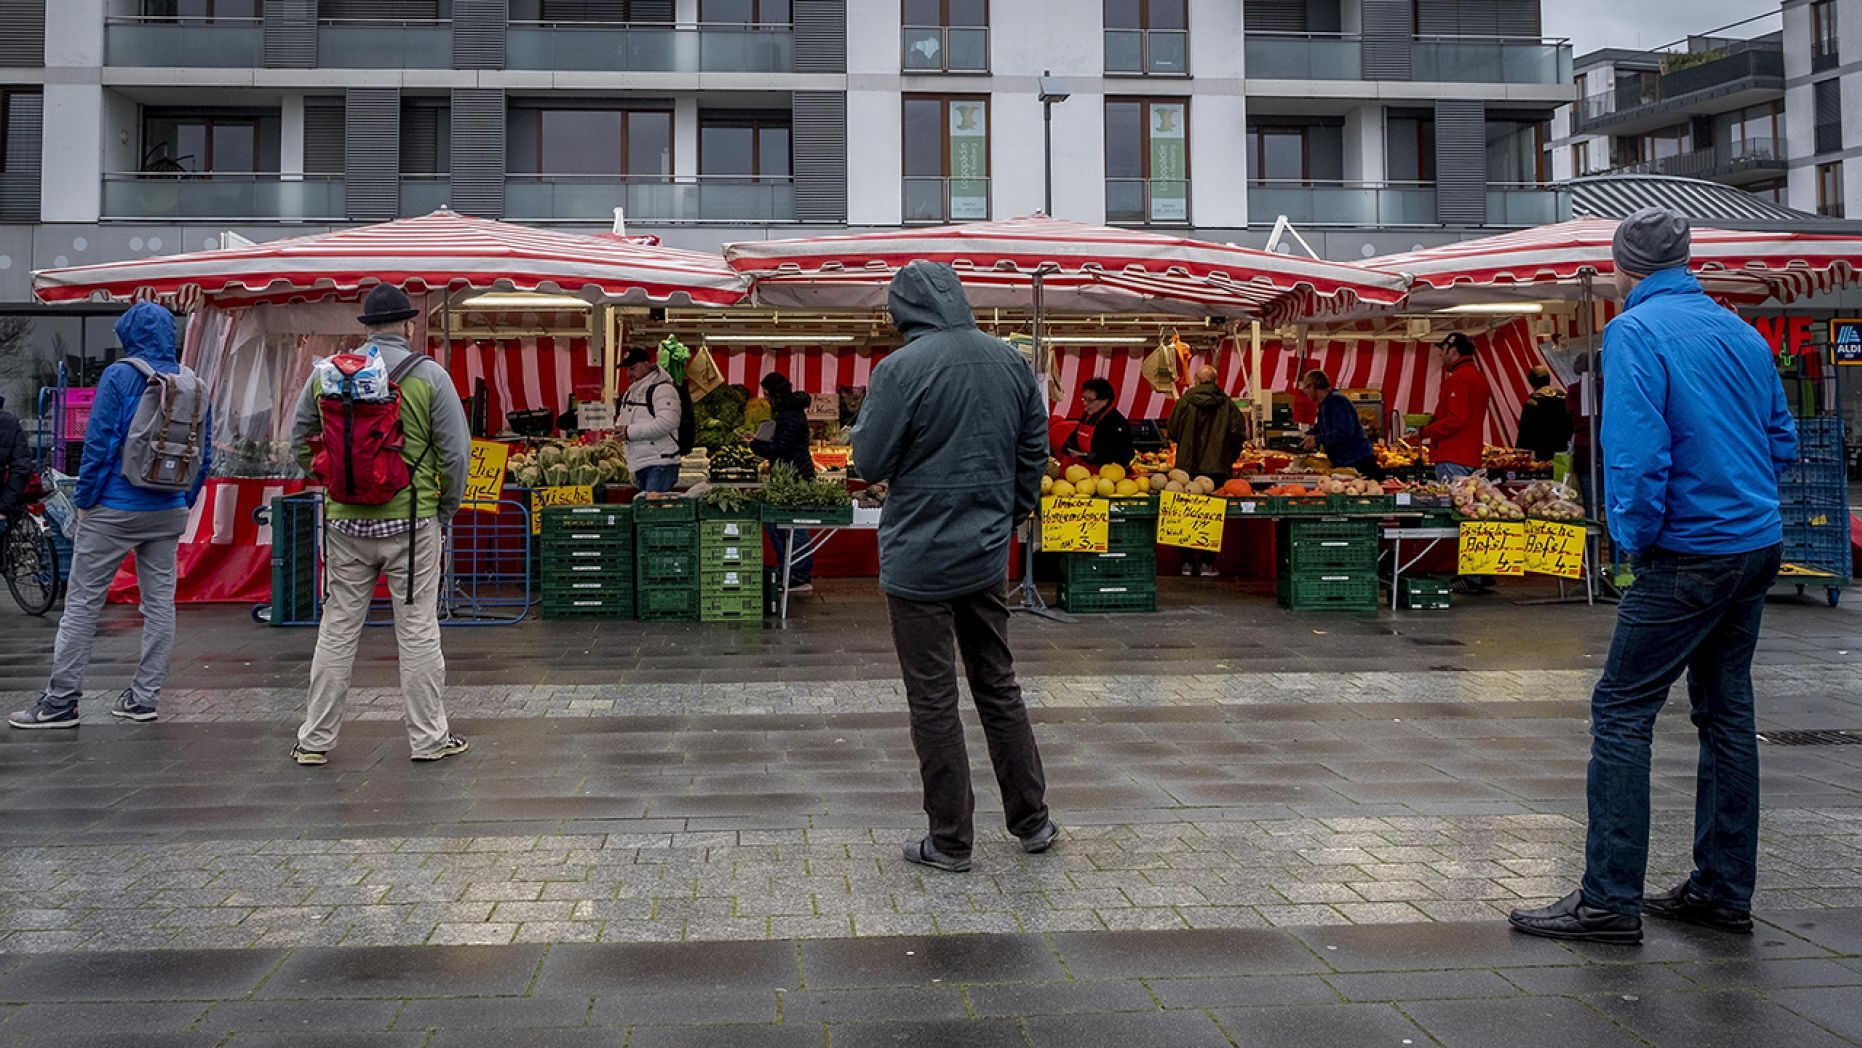 People keep distance as they queue on a small weekly market in Frankfurt, Germany